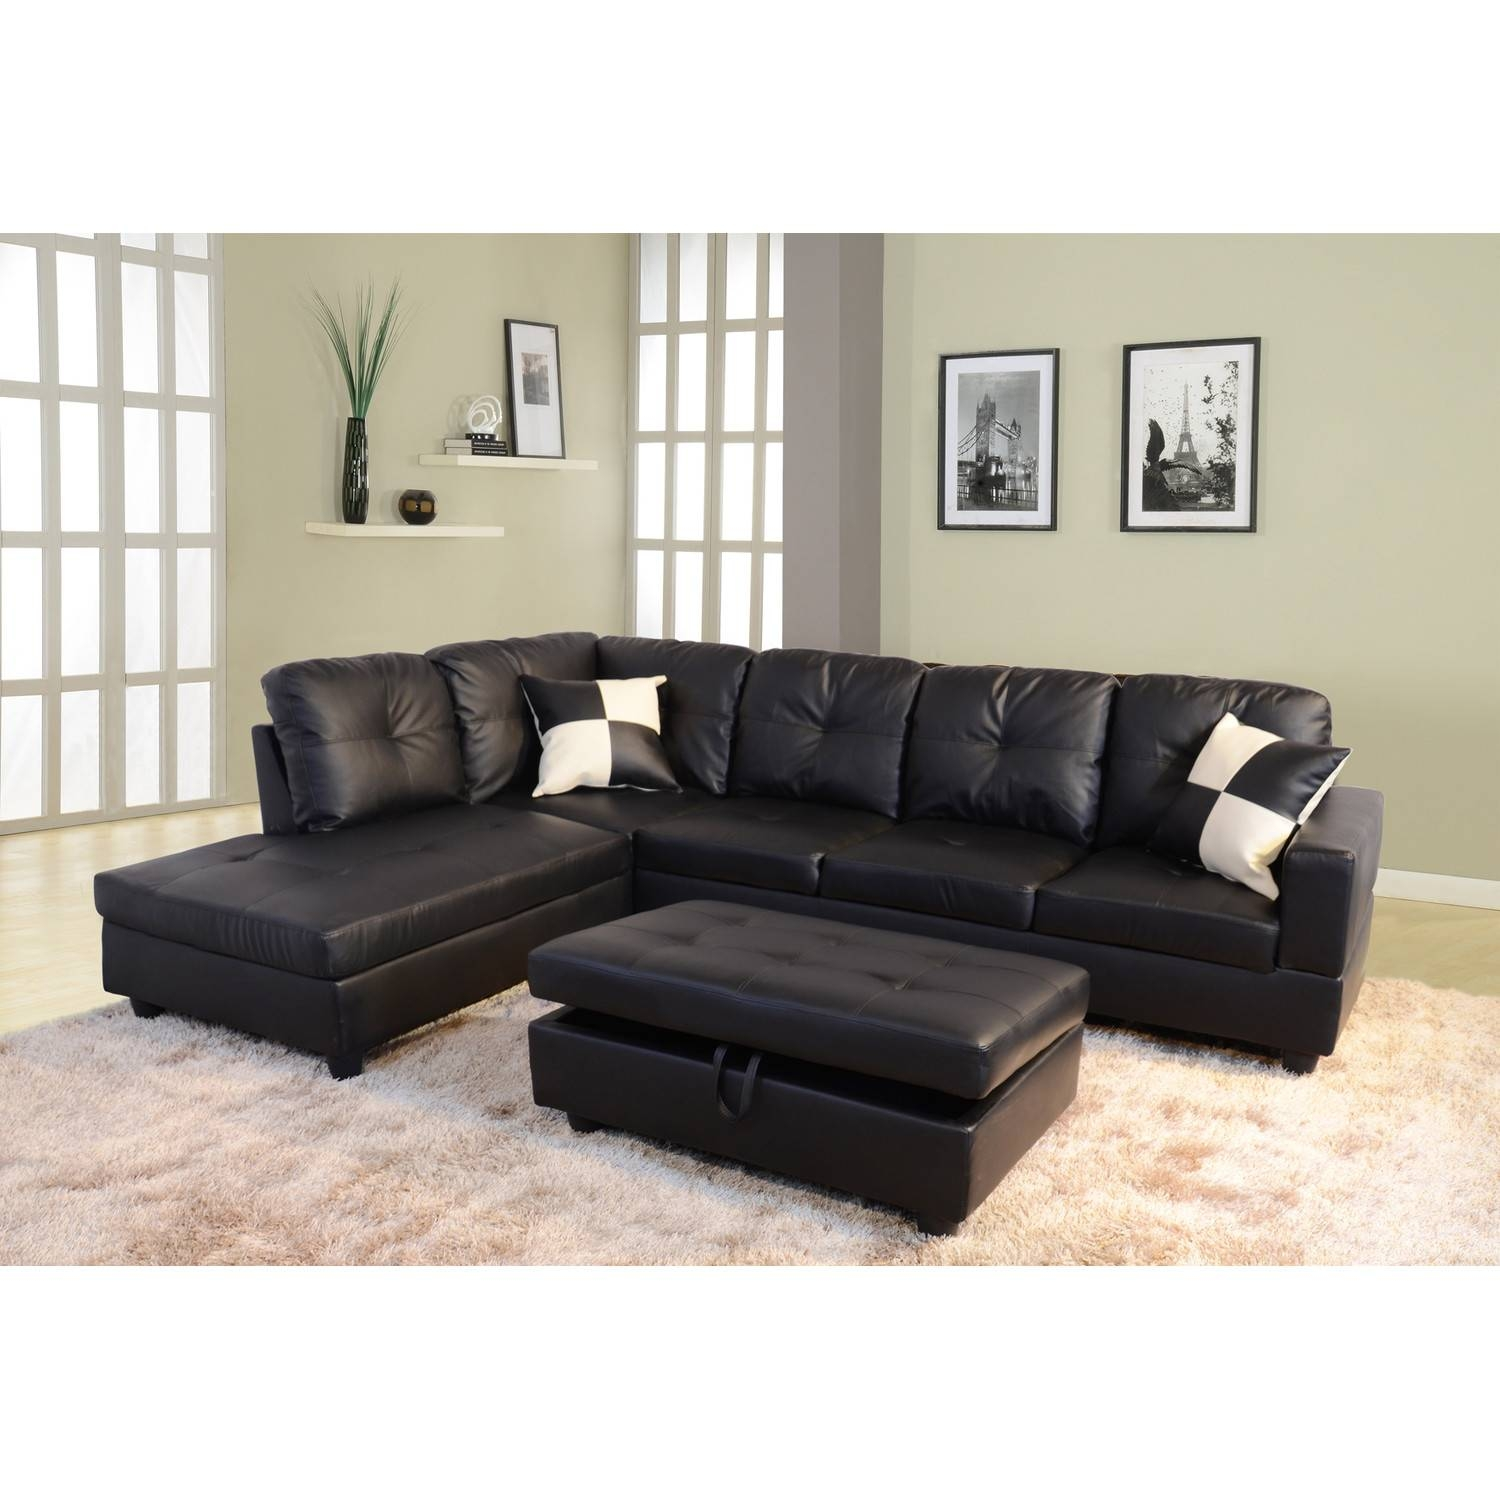 Furniture: Modern And Contemporary Sofa Sectionals For Living Room With Black Leather Chaise Sofas (View 15 of 15)